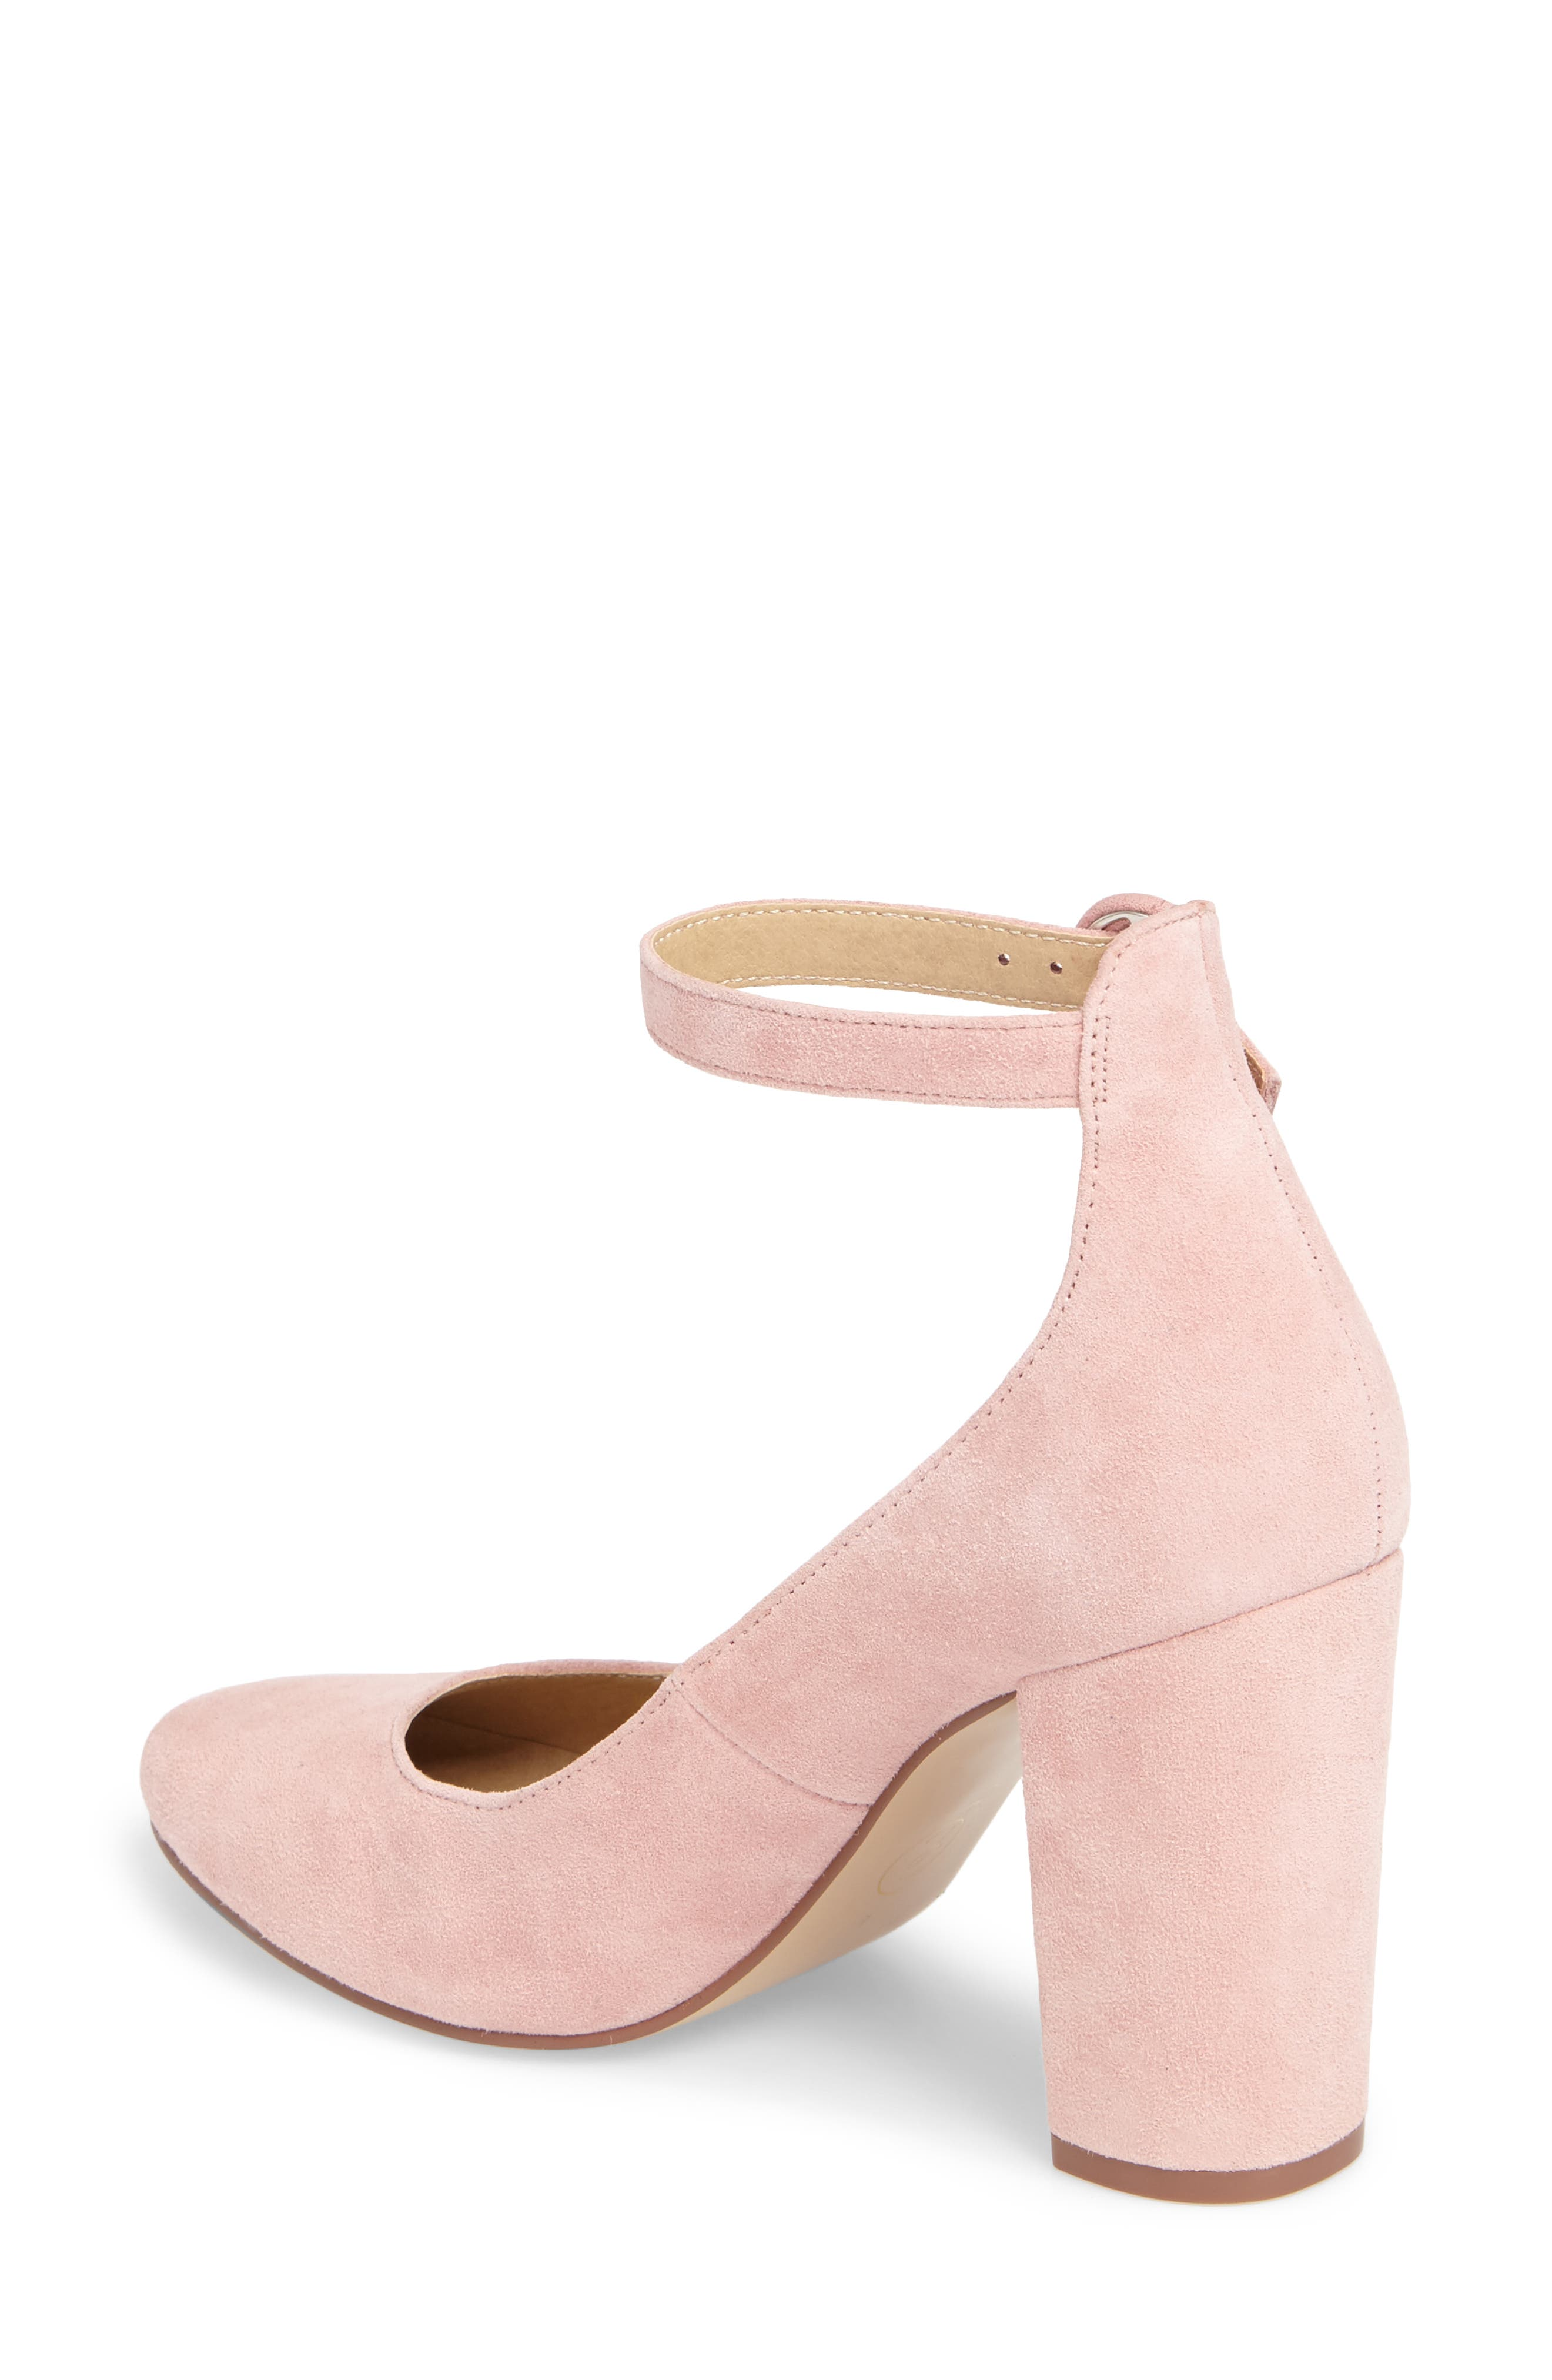 Veronika Pump,                             Alternate thumbnail 2, color,                             Rose Suede